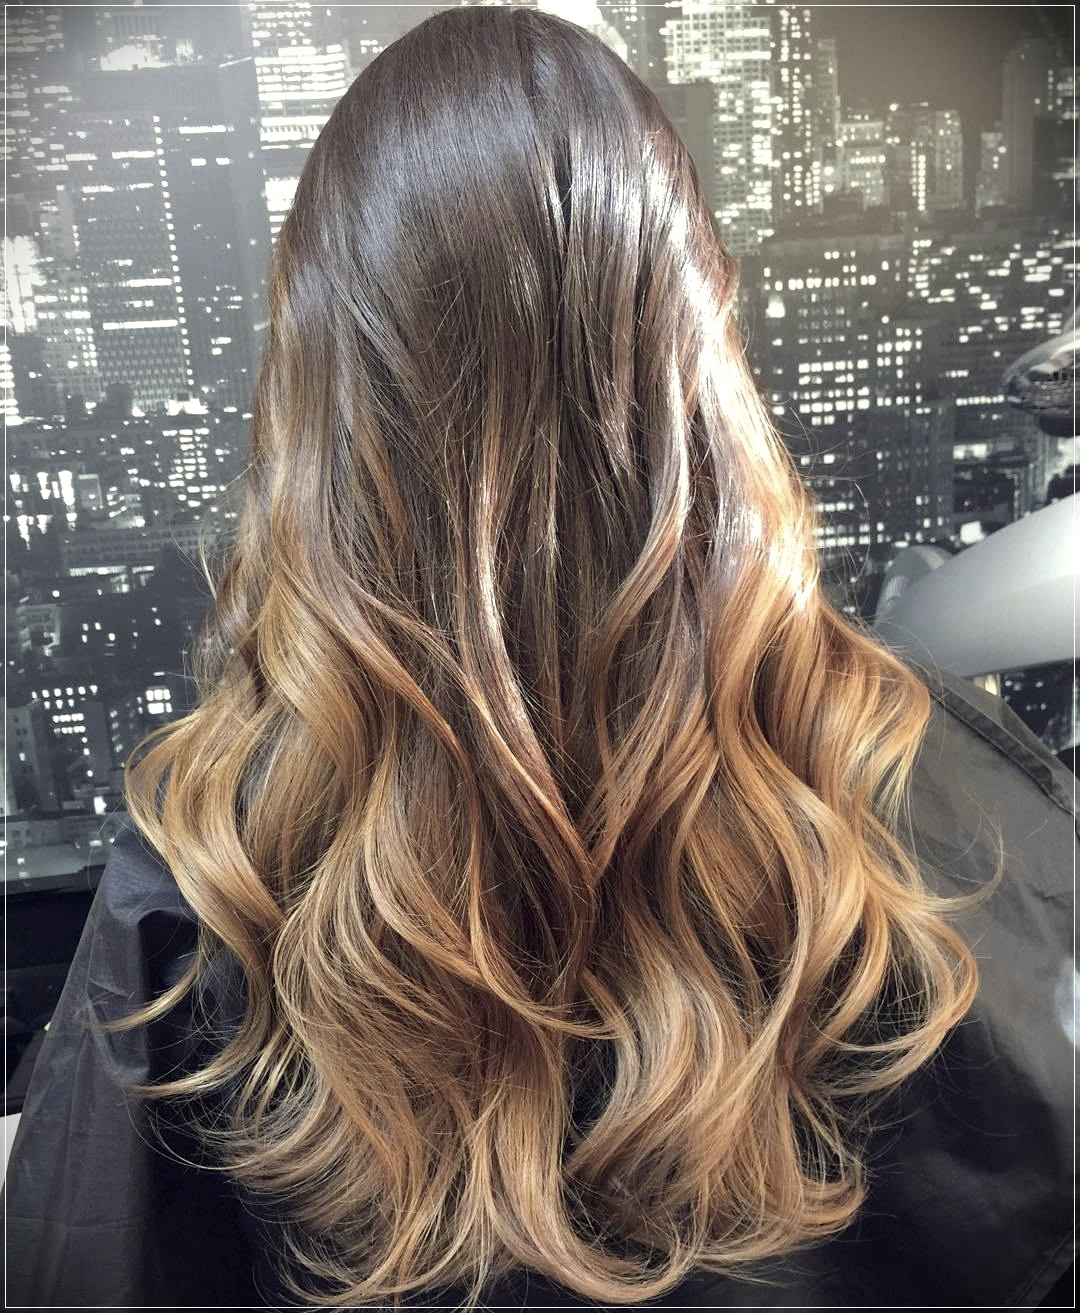 How to do ombre hair color to look attractive and sexy - ombre hair color 2